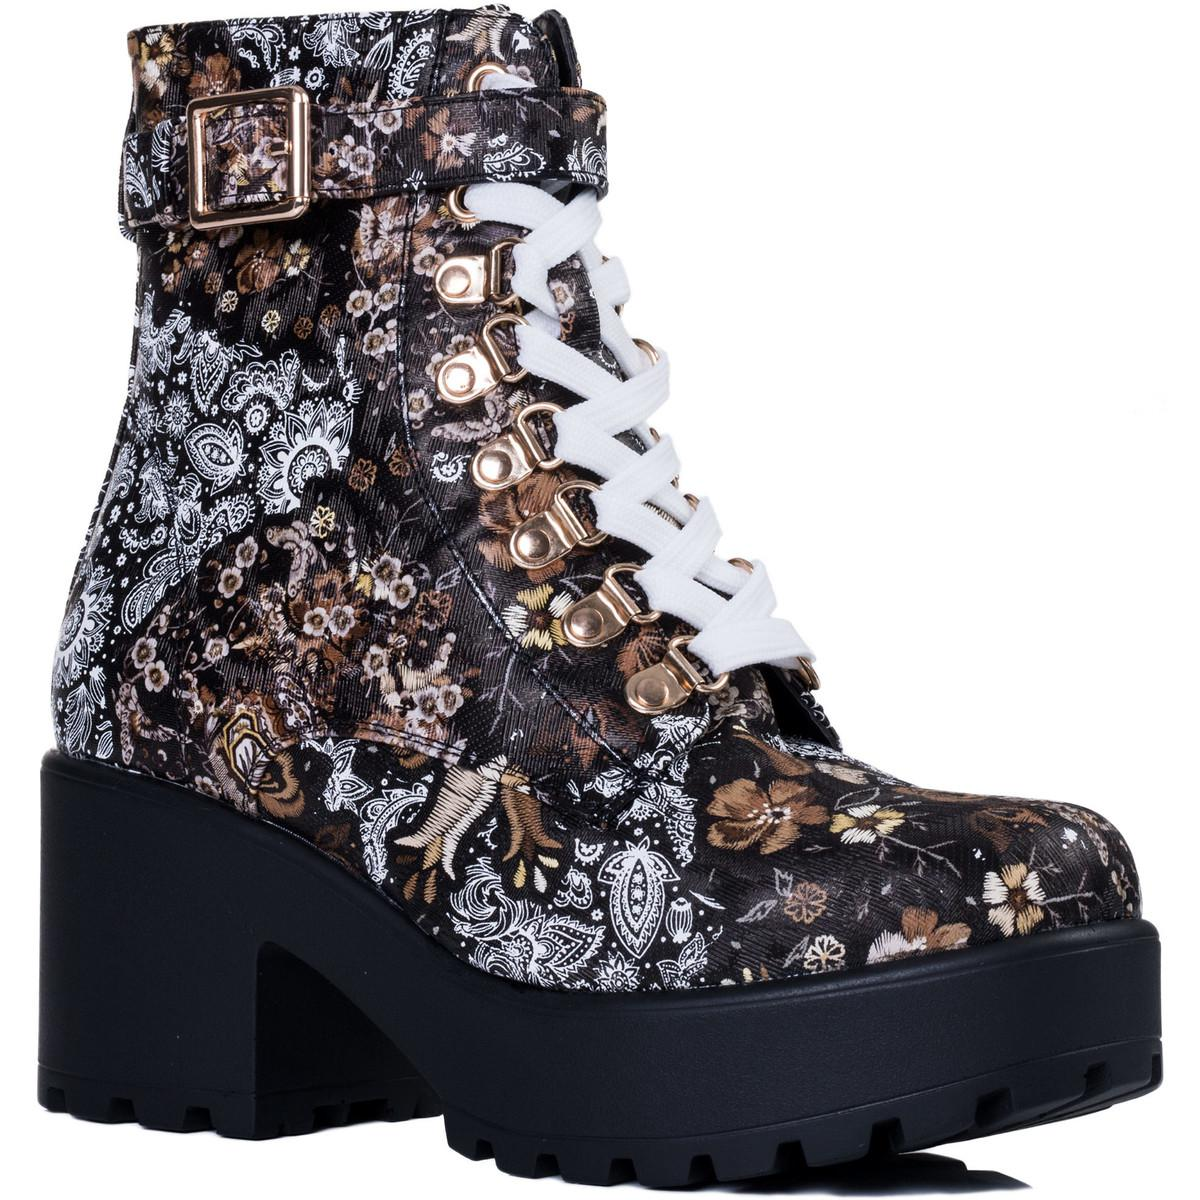 cc0e73a8593 Spylovebuy Viciouser Women's Low Ankle Boots In Brown in Brown - Lyst